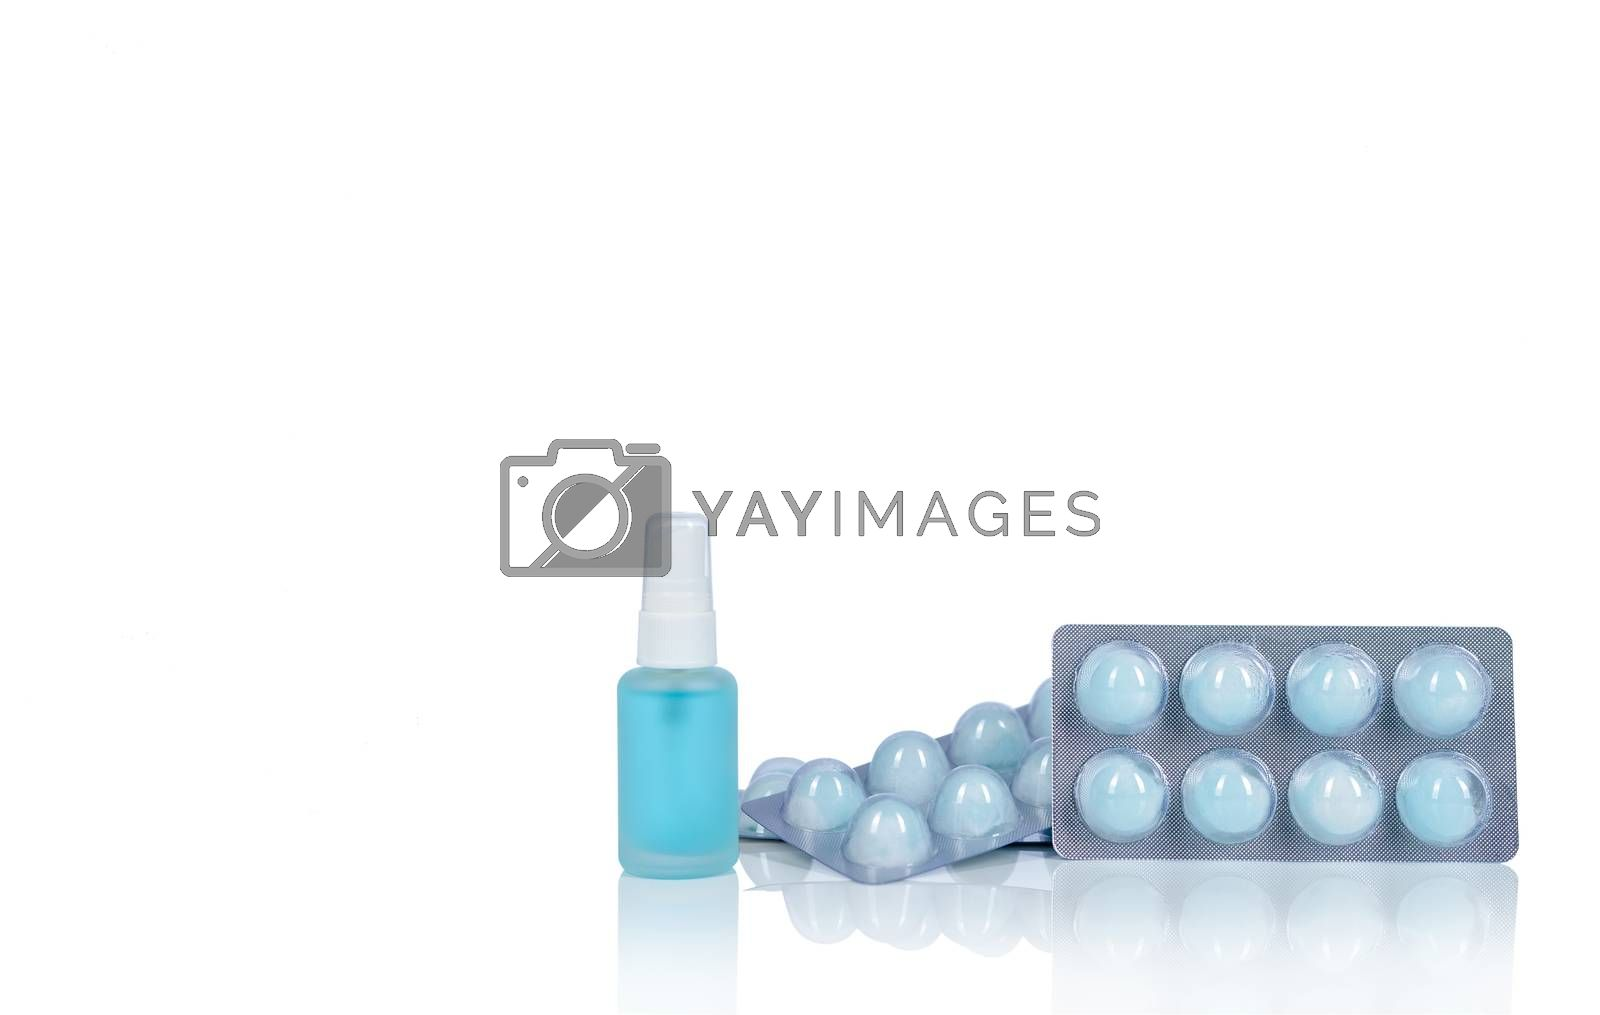 Alcohol spray in glass bottle container, Hand sanitizer in plastic tube, and cotton ball with alcohol in blister pack for cleaning hand to protect coronavirus. Medical supply for personal hygiene.